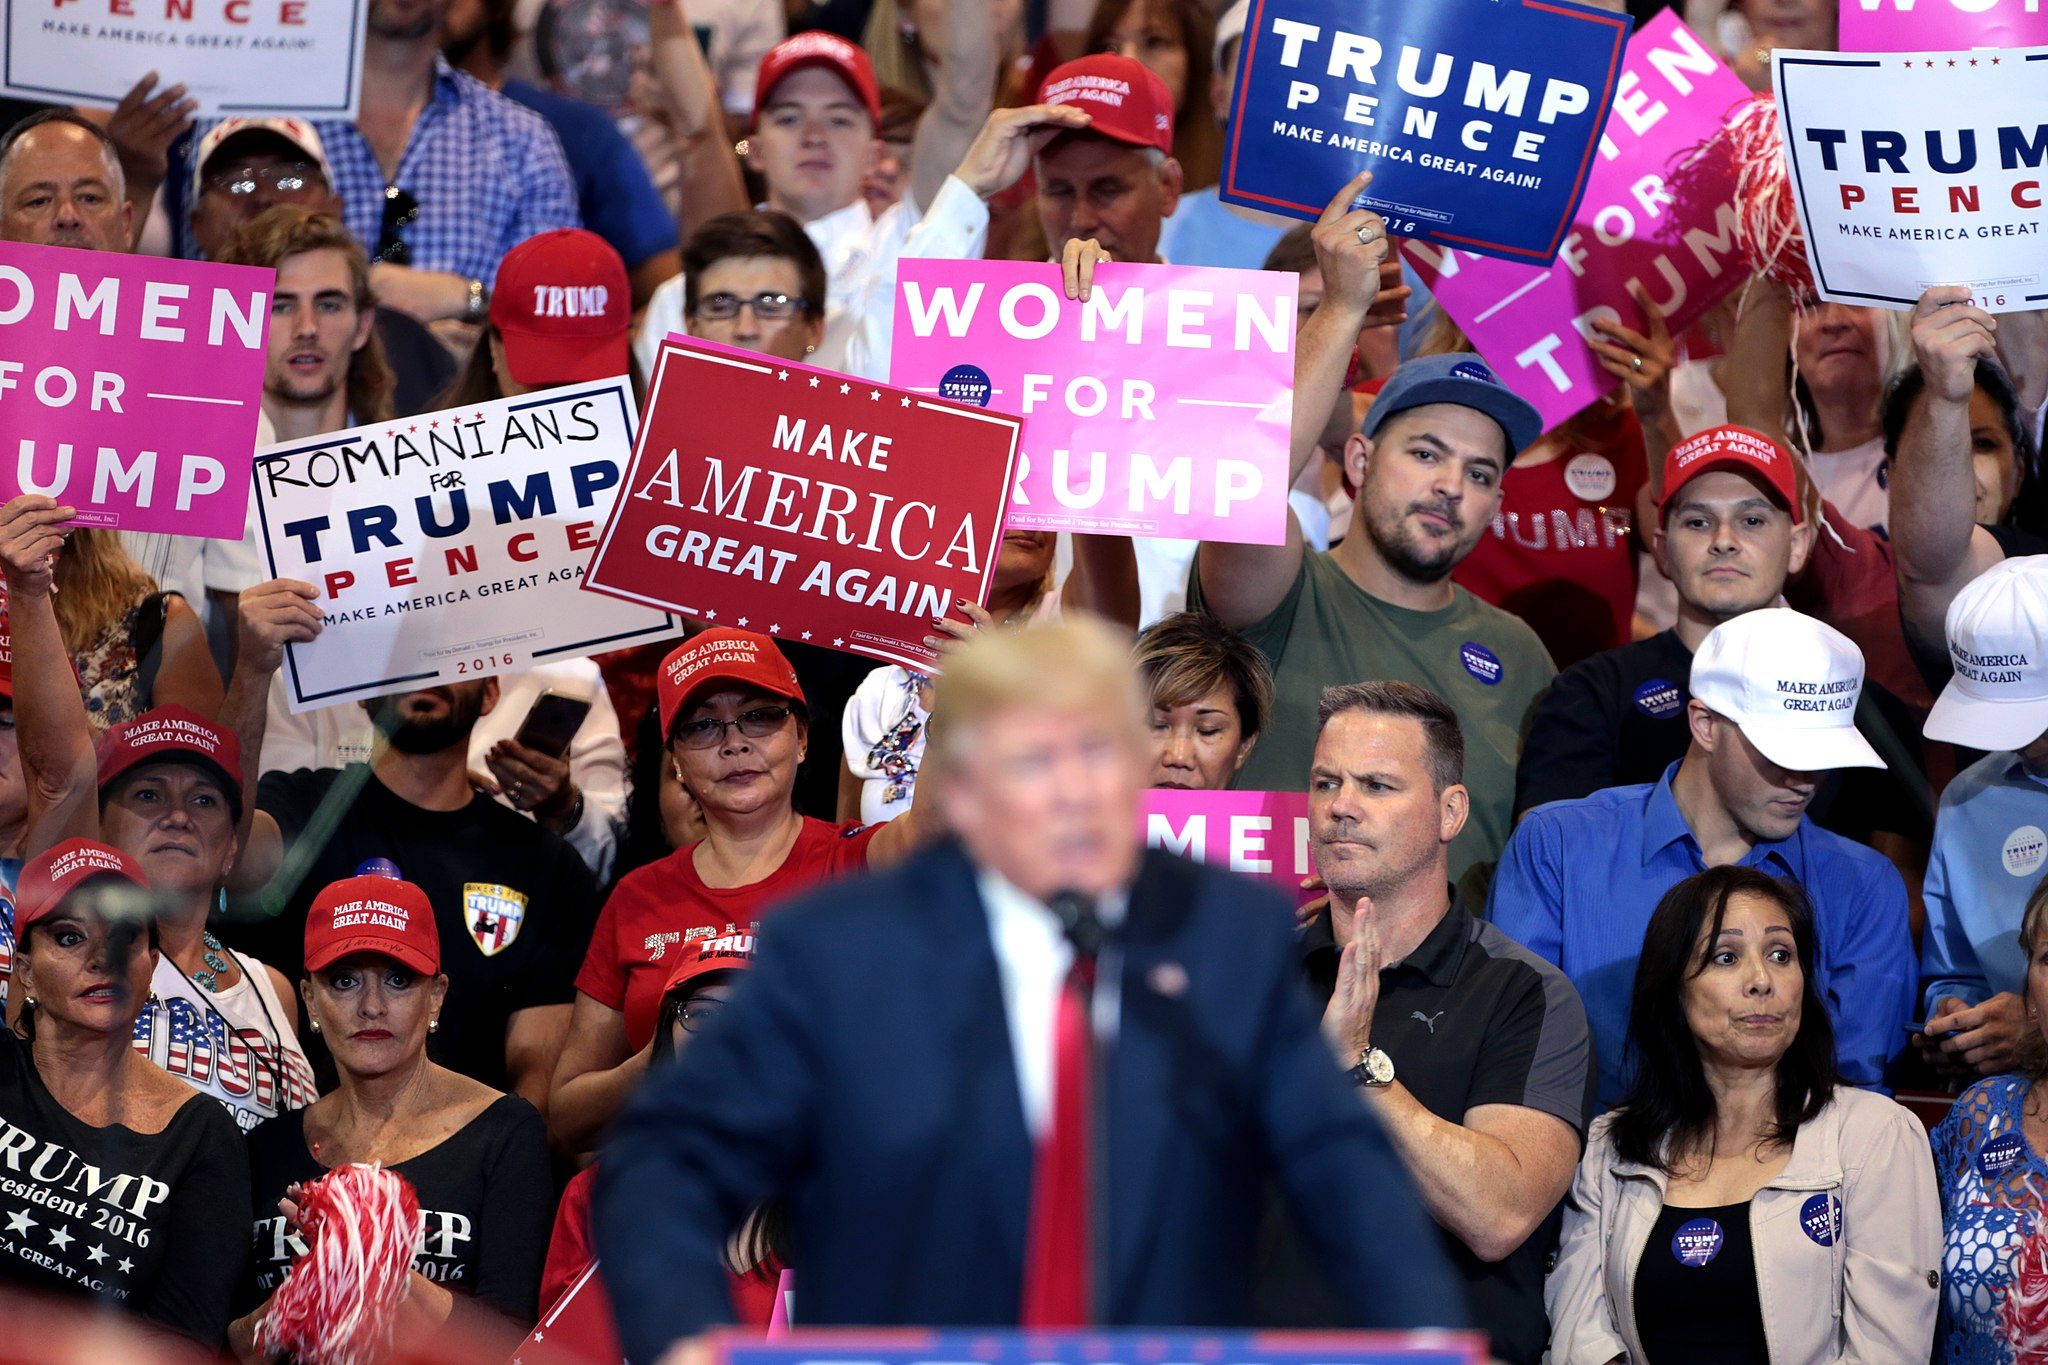 They are predicting thousands . . . Let's help make it a million: Pro-Trump rallies in DC this weekend